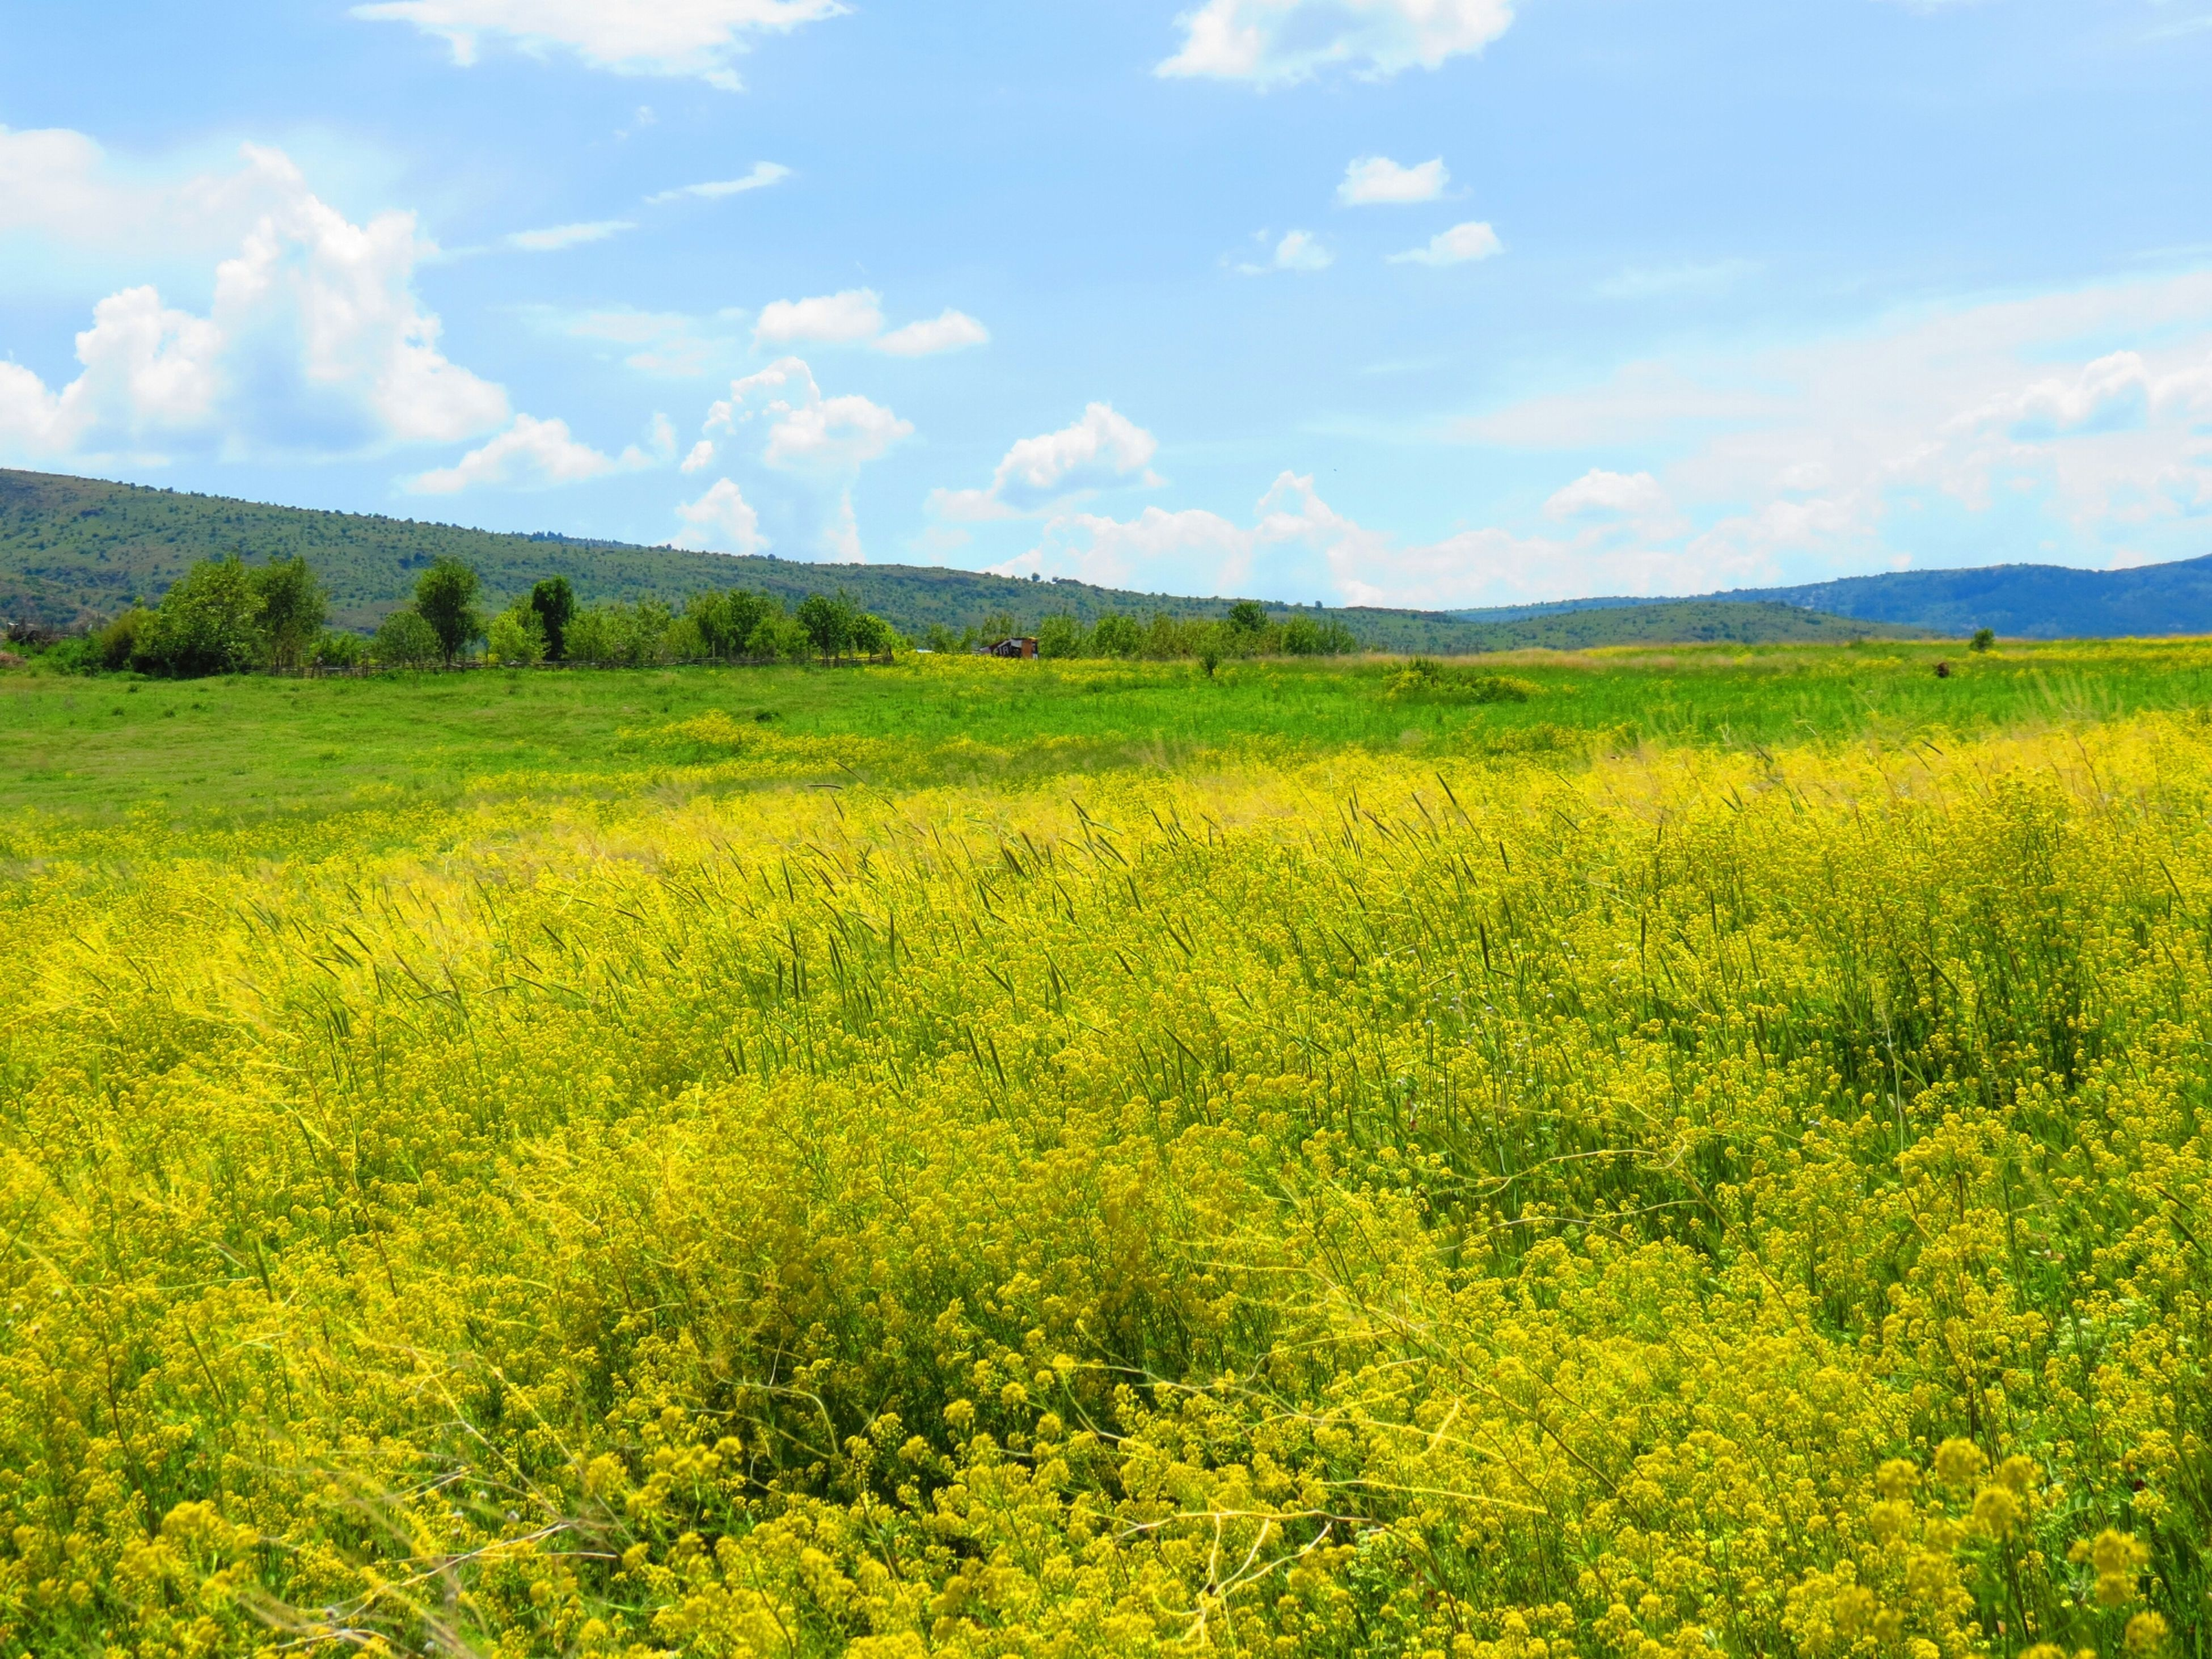 flower, yellow, beauty in nature, field, landscape, growth, tranquil scene, rural scene, sky, tranquility, agriculture, scenics, nature, freshness, farm, oilseed rape, crop, plant, cloud - sky, cloud